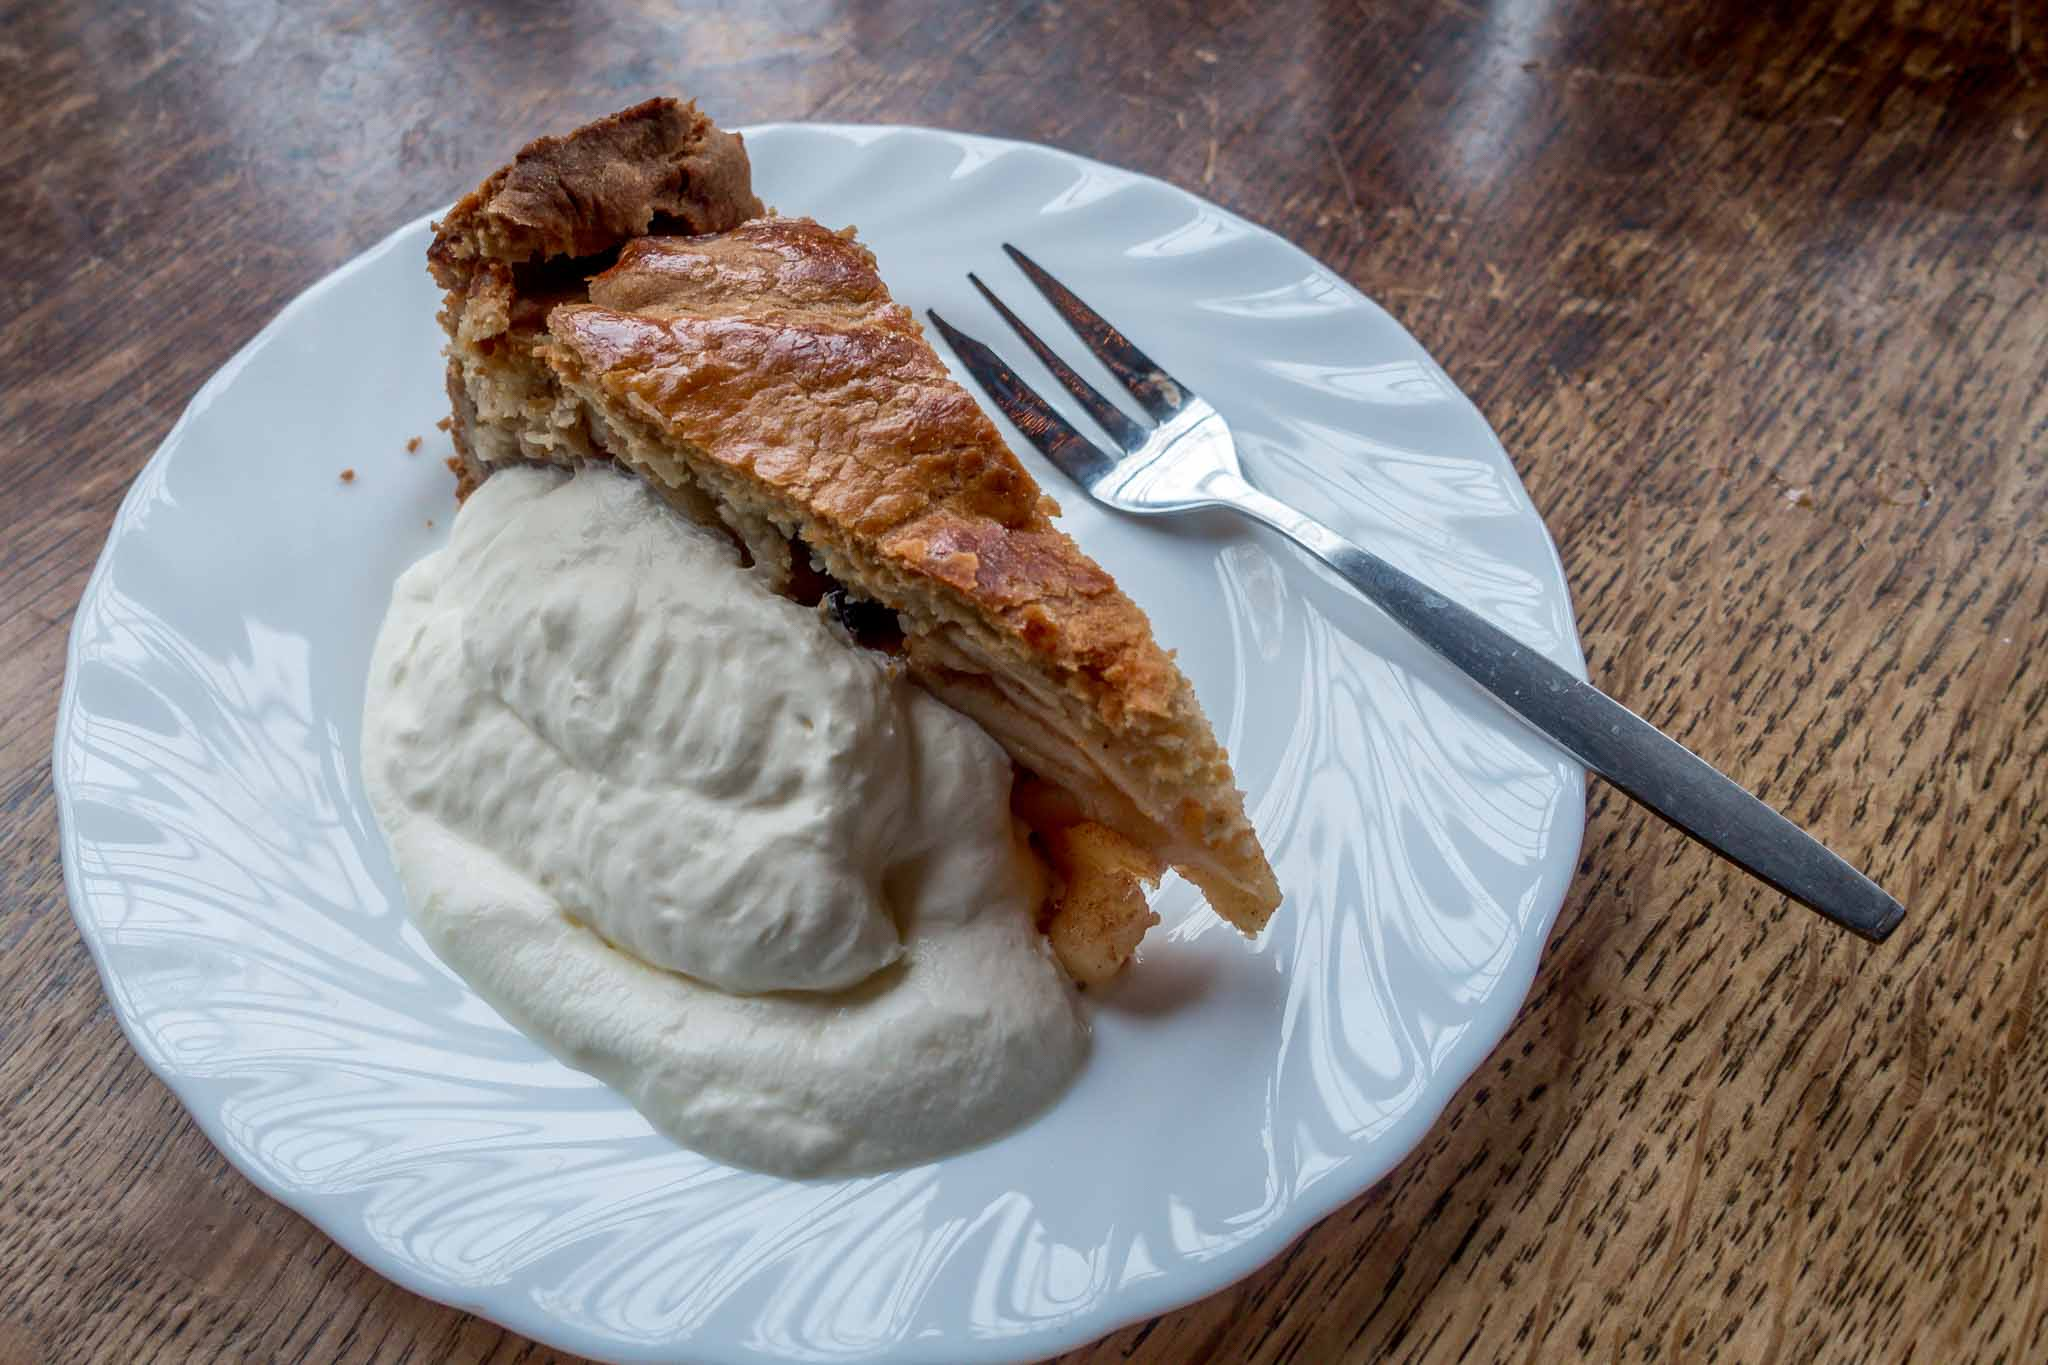 Dutch apple pie with whipped cream and fork